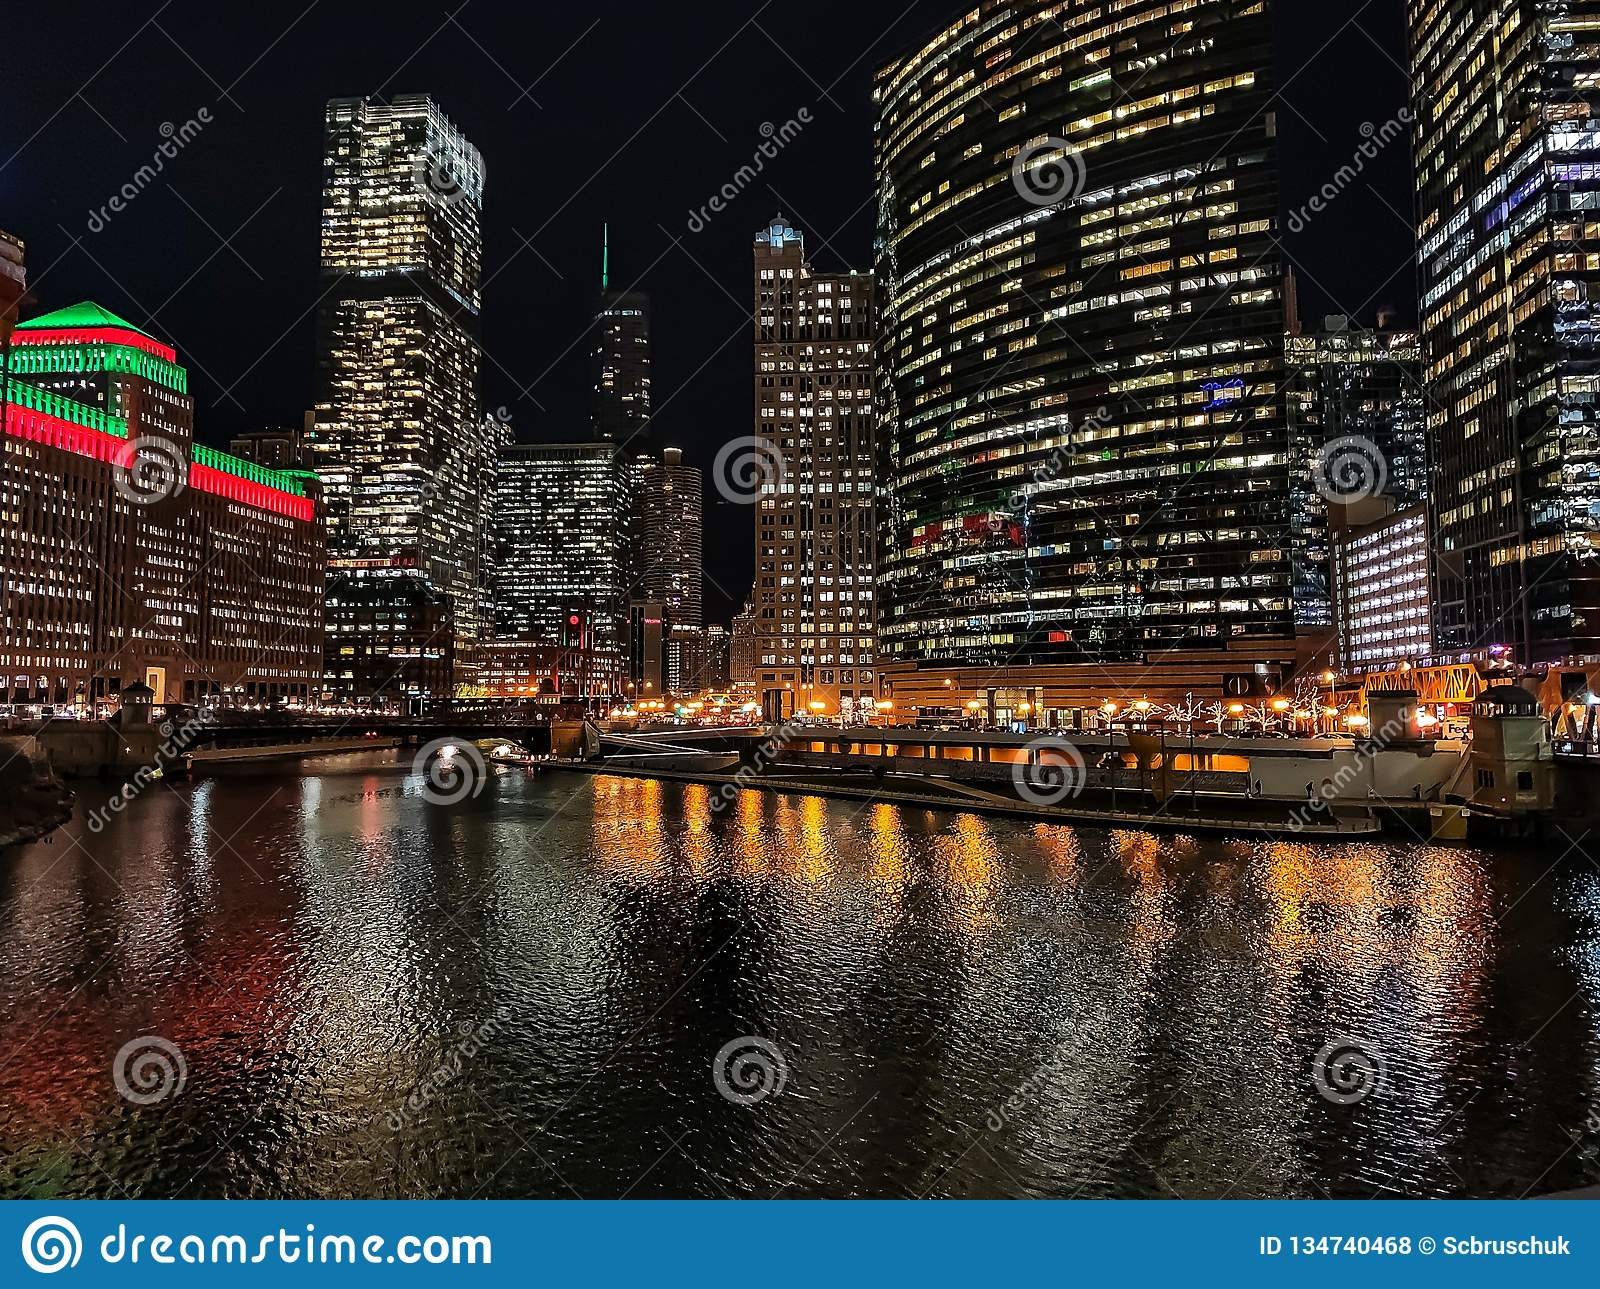 Stunning view of Chicago cityscape with holiday/Christmas colors illuminated over the water.